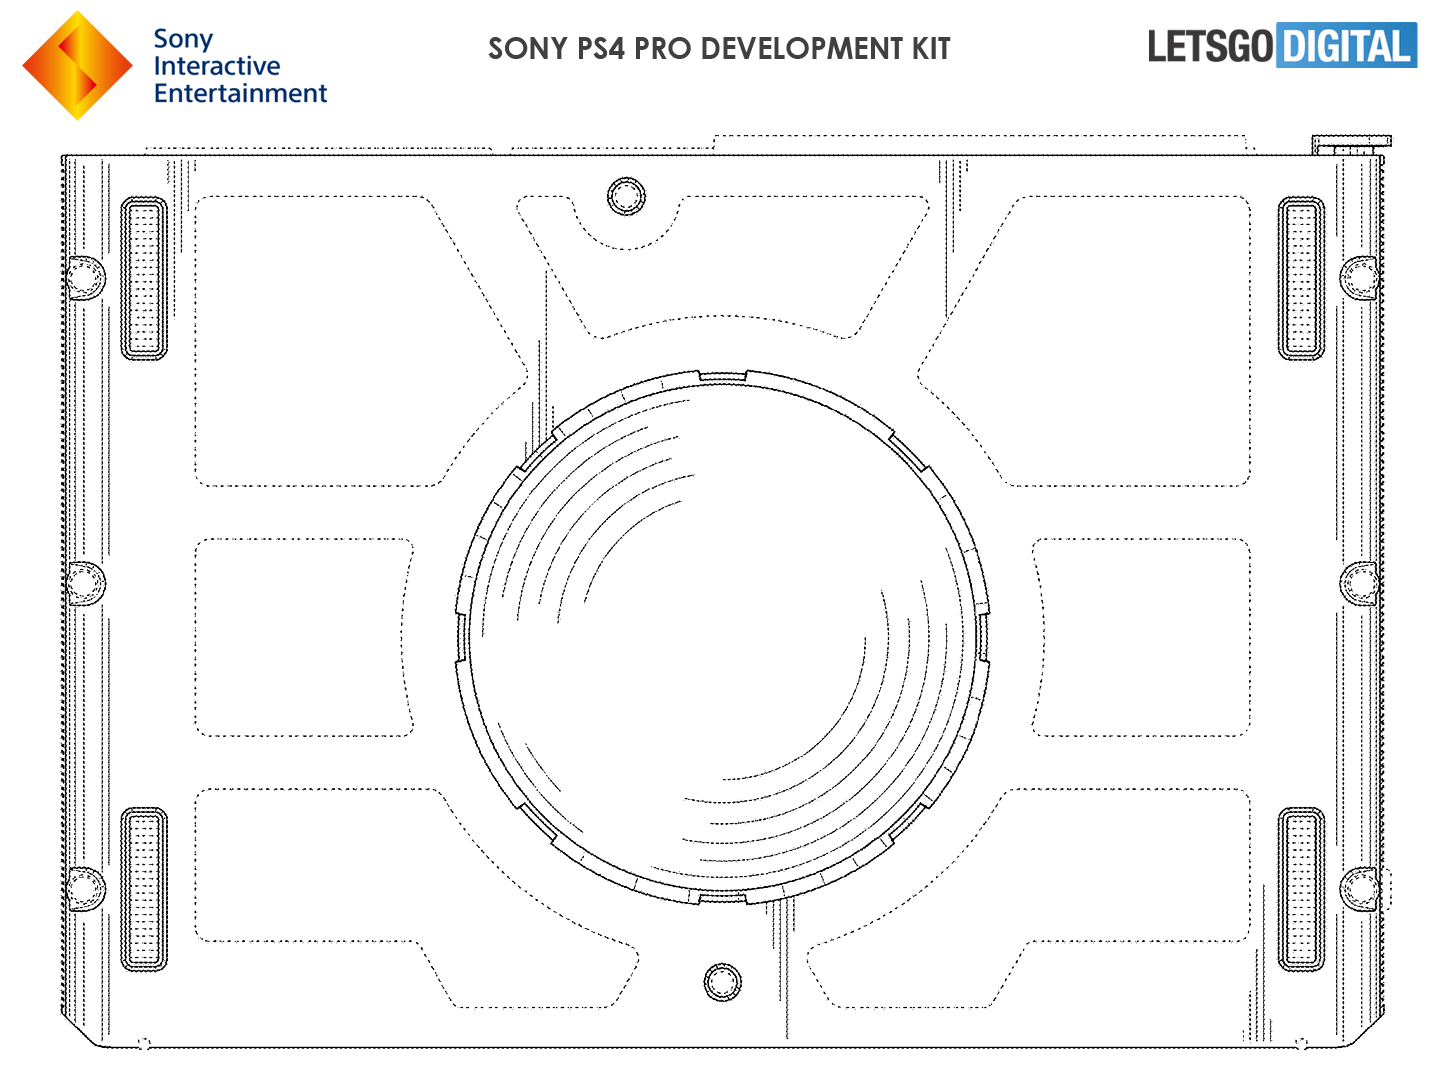 PS5 3D Renders Surface After Patent Leak - PlayStation 5